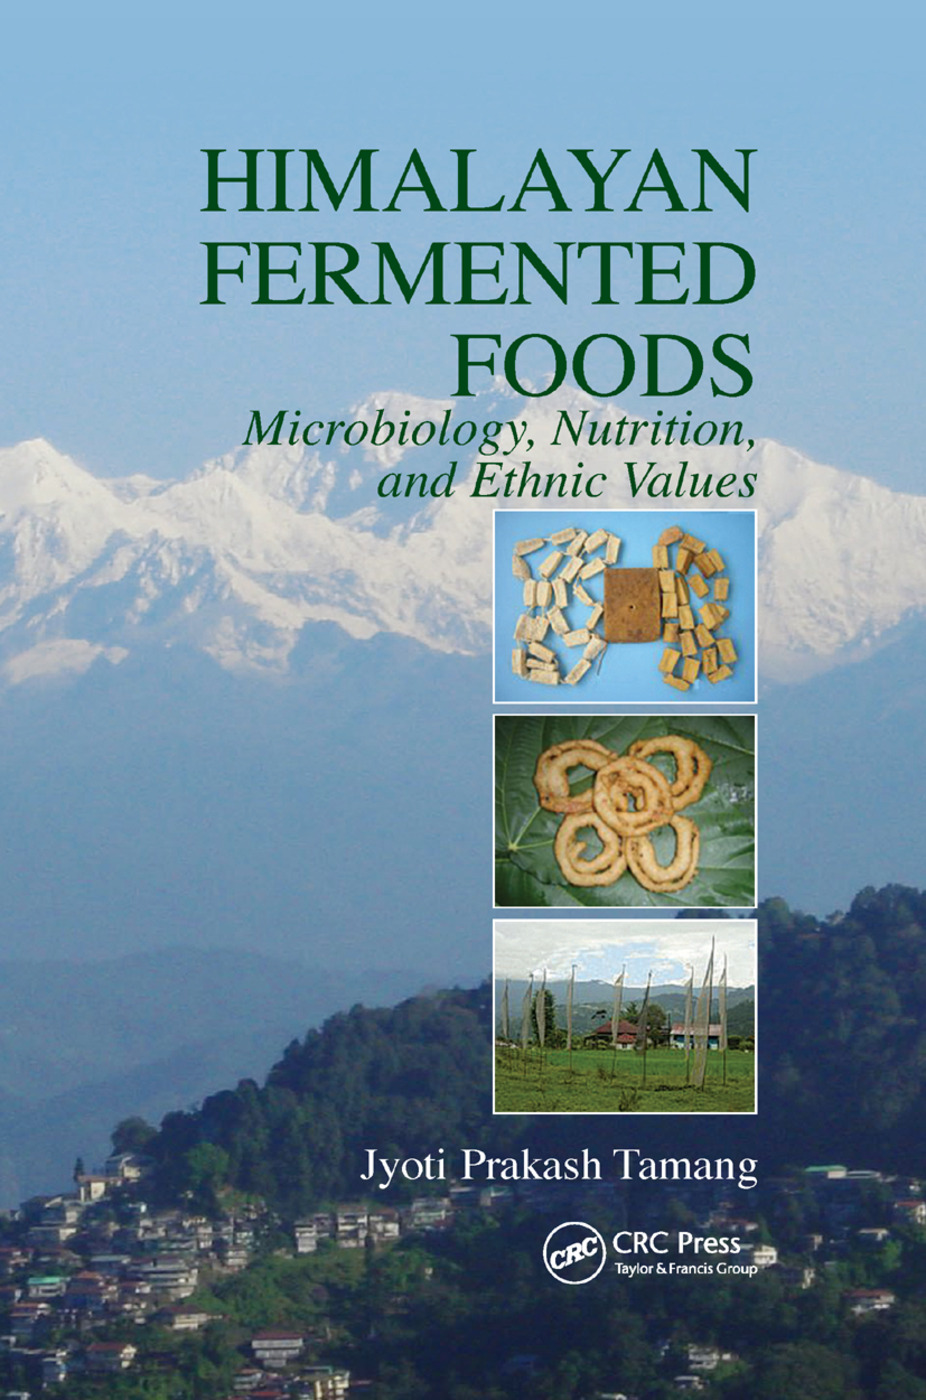 Himalayan Fermented Foods: Microbiology, Nutrition, and Ethnic Values, 1st Edition (Paperback) book cover